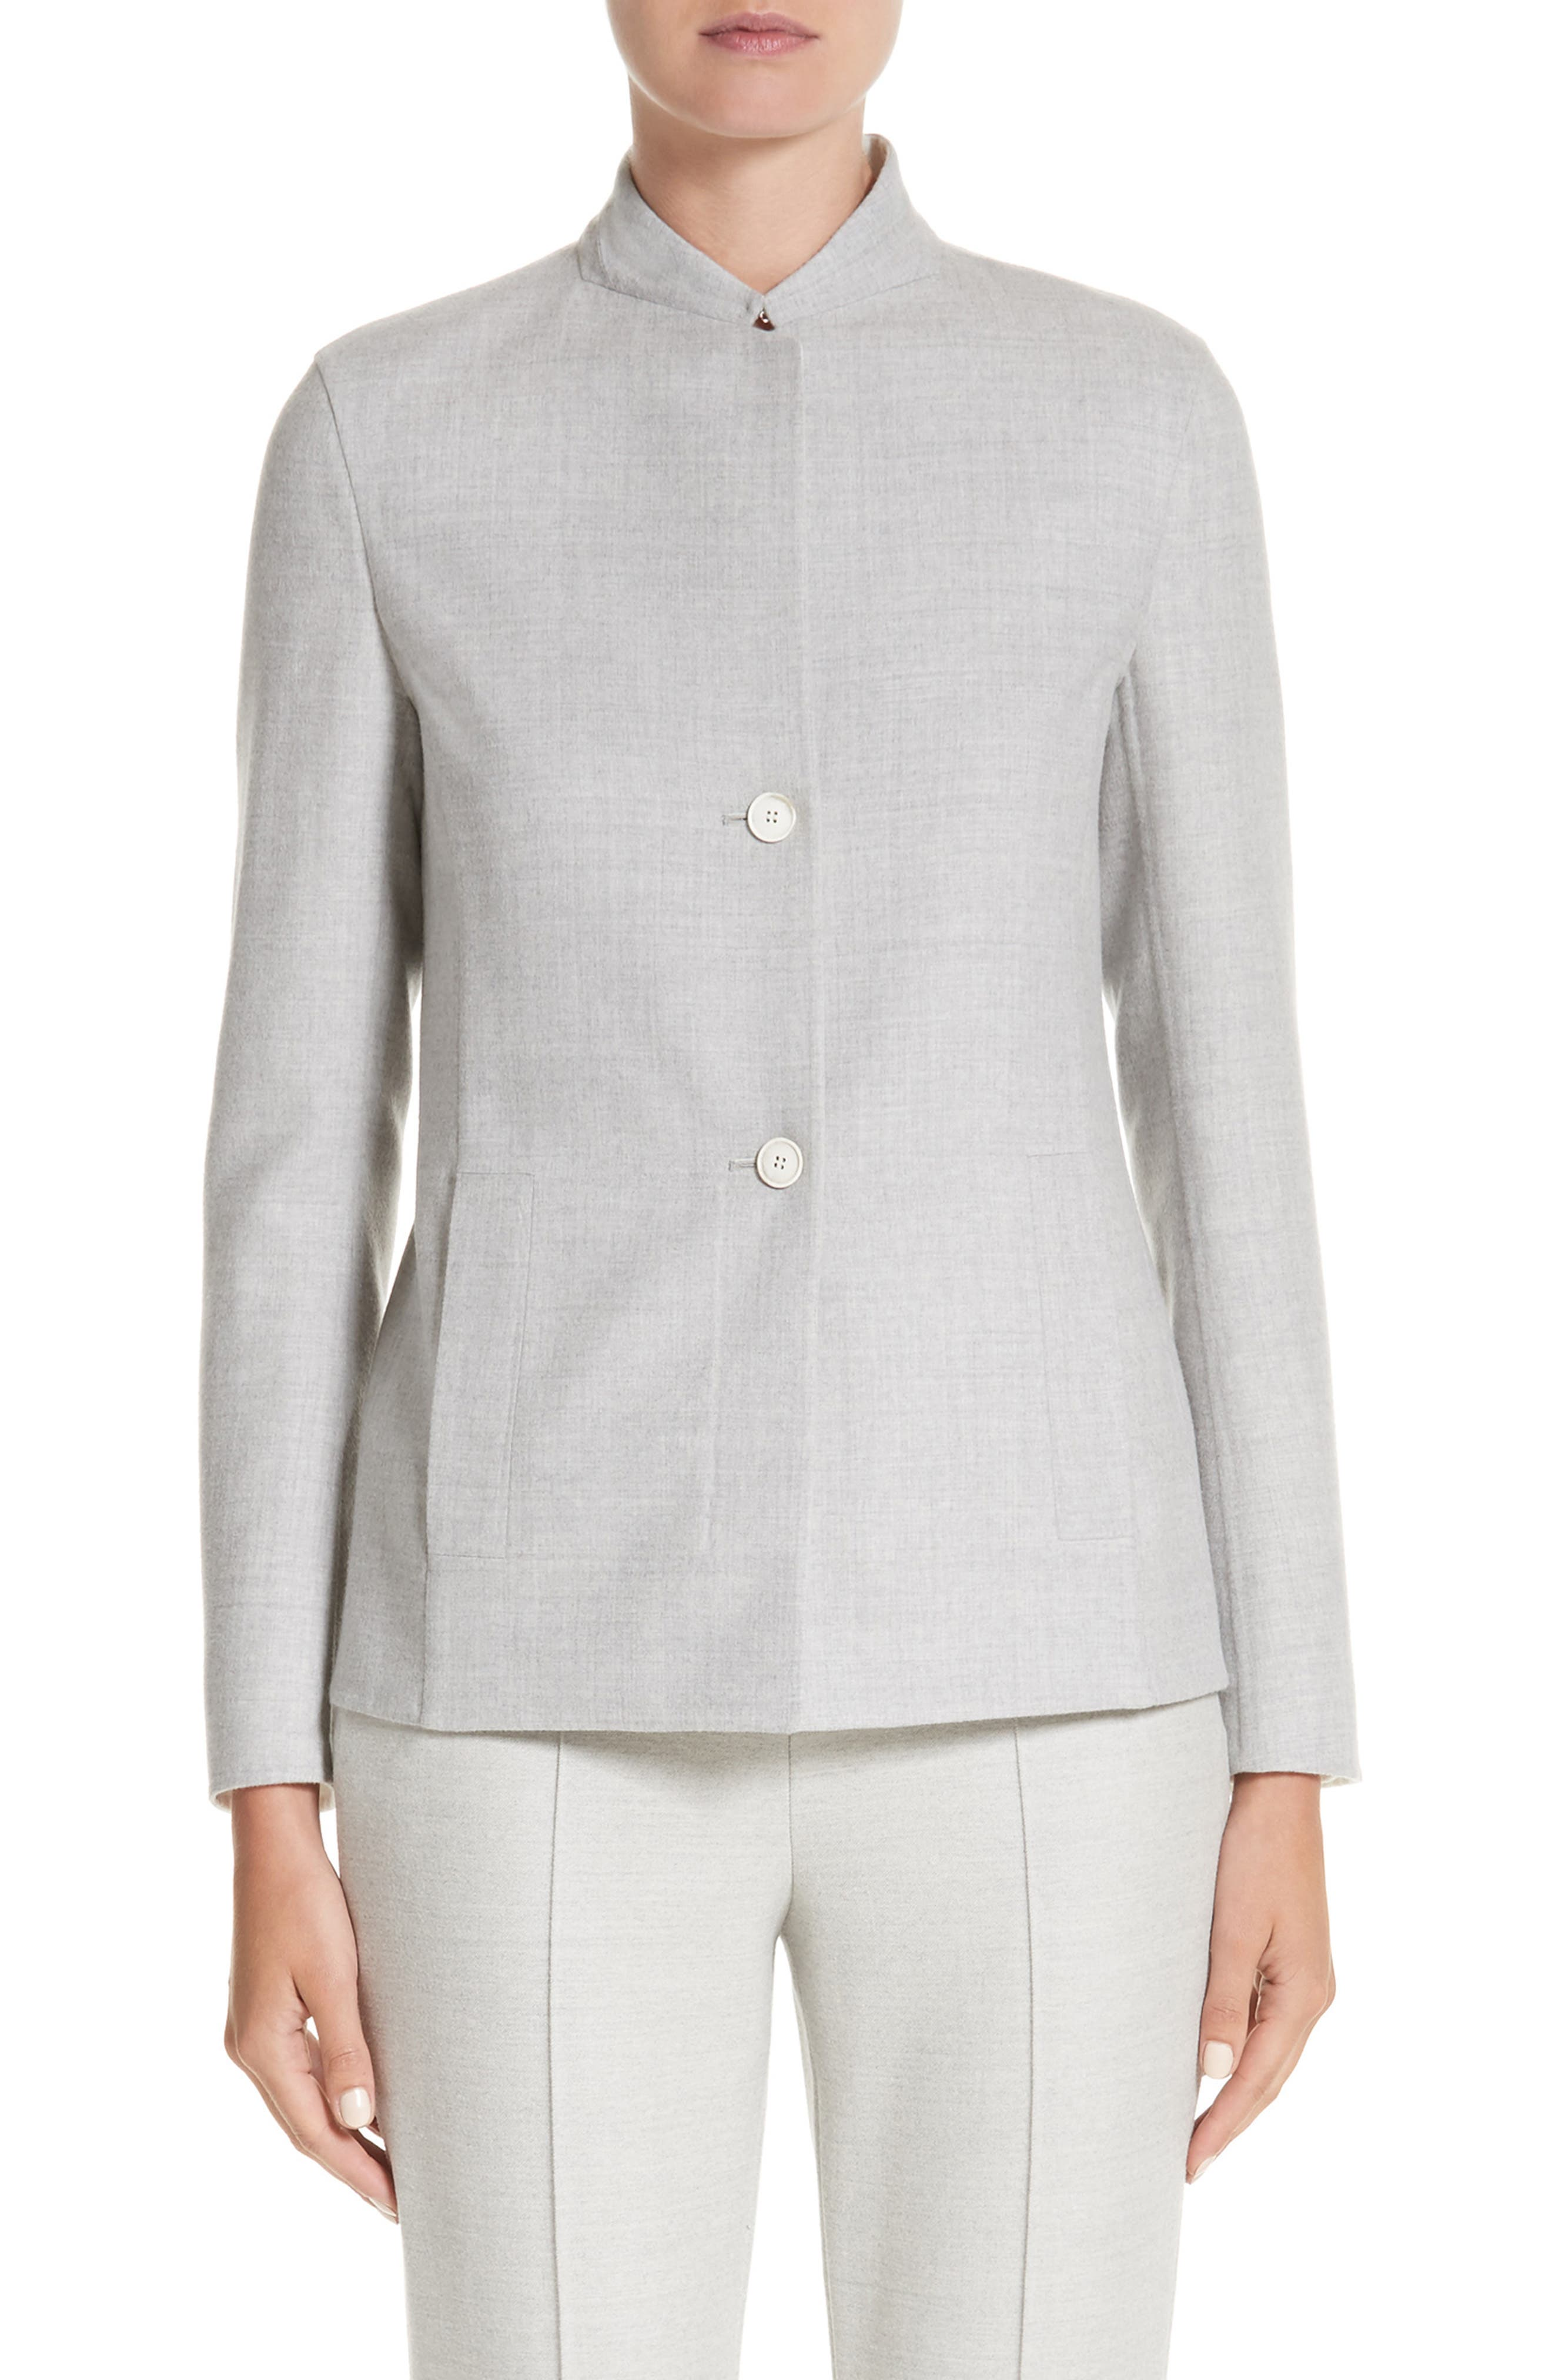 Stretch Wool & Silk Bicolor Reversible Jacket,                         Main,                         color, Gravel/ Off White